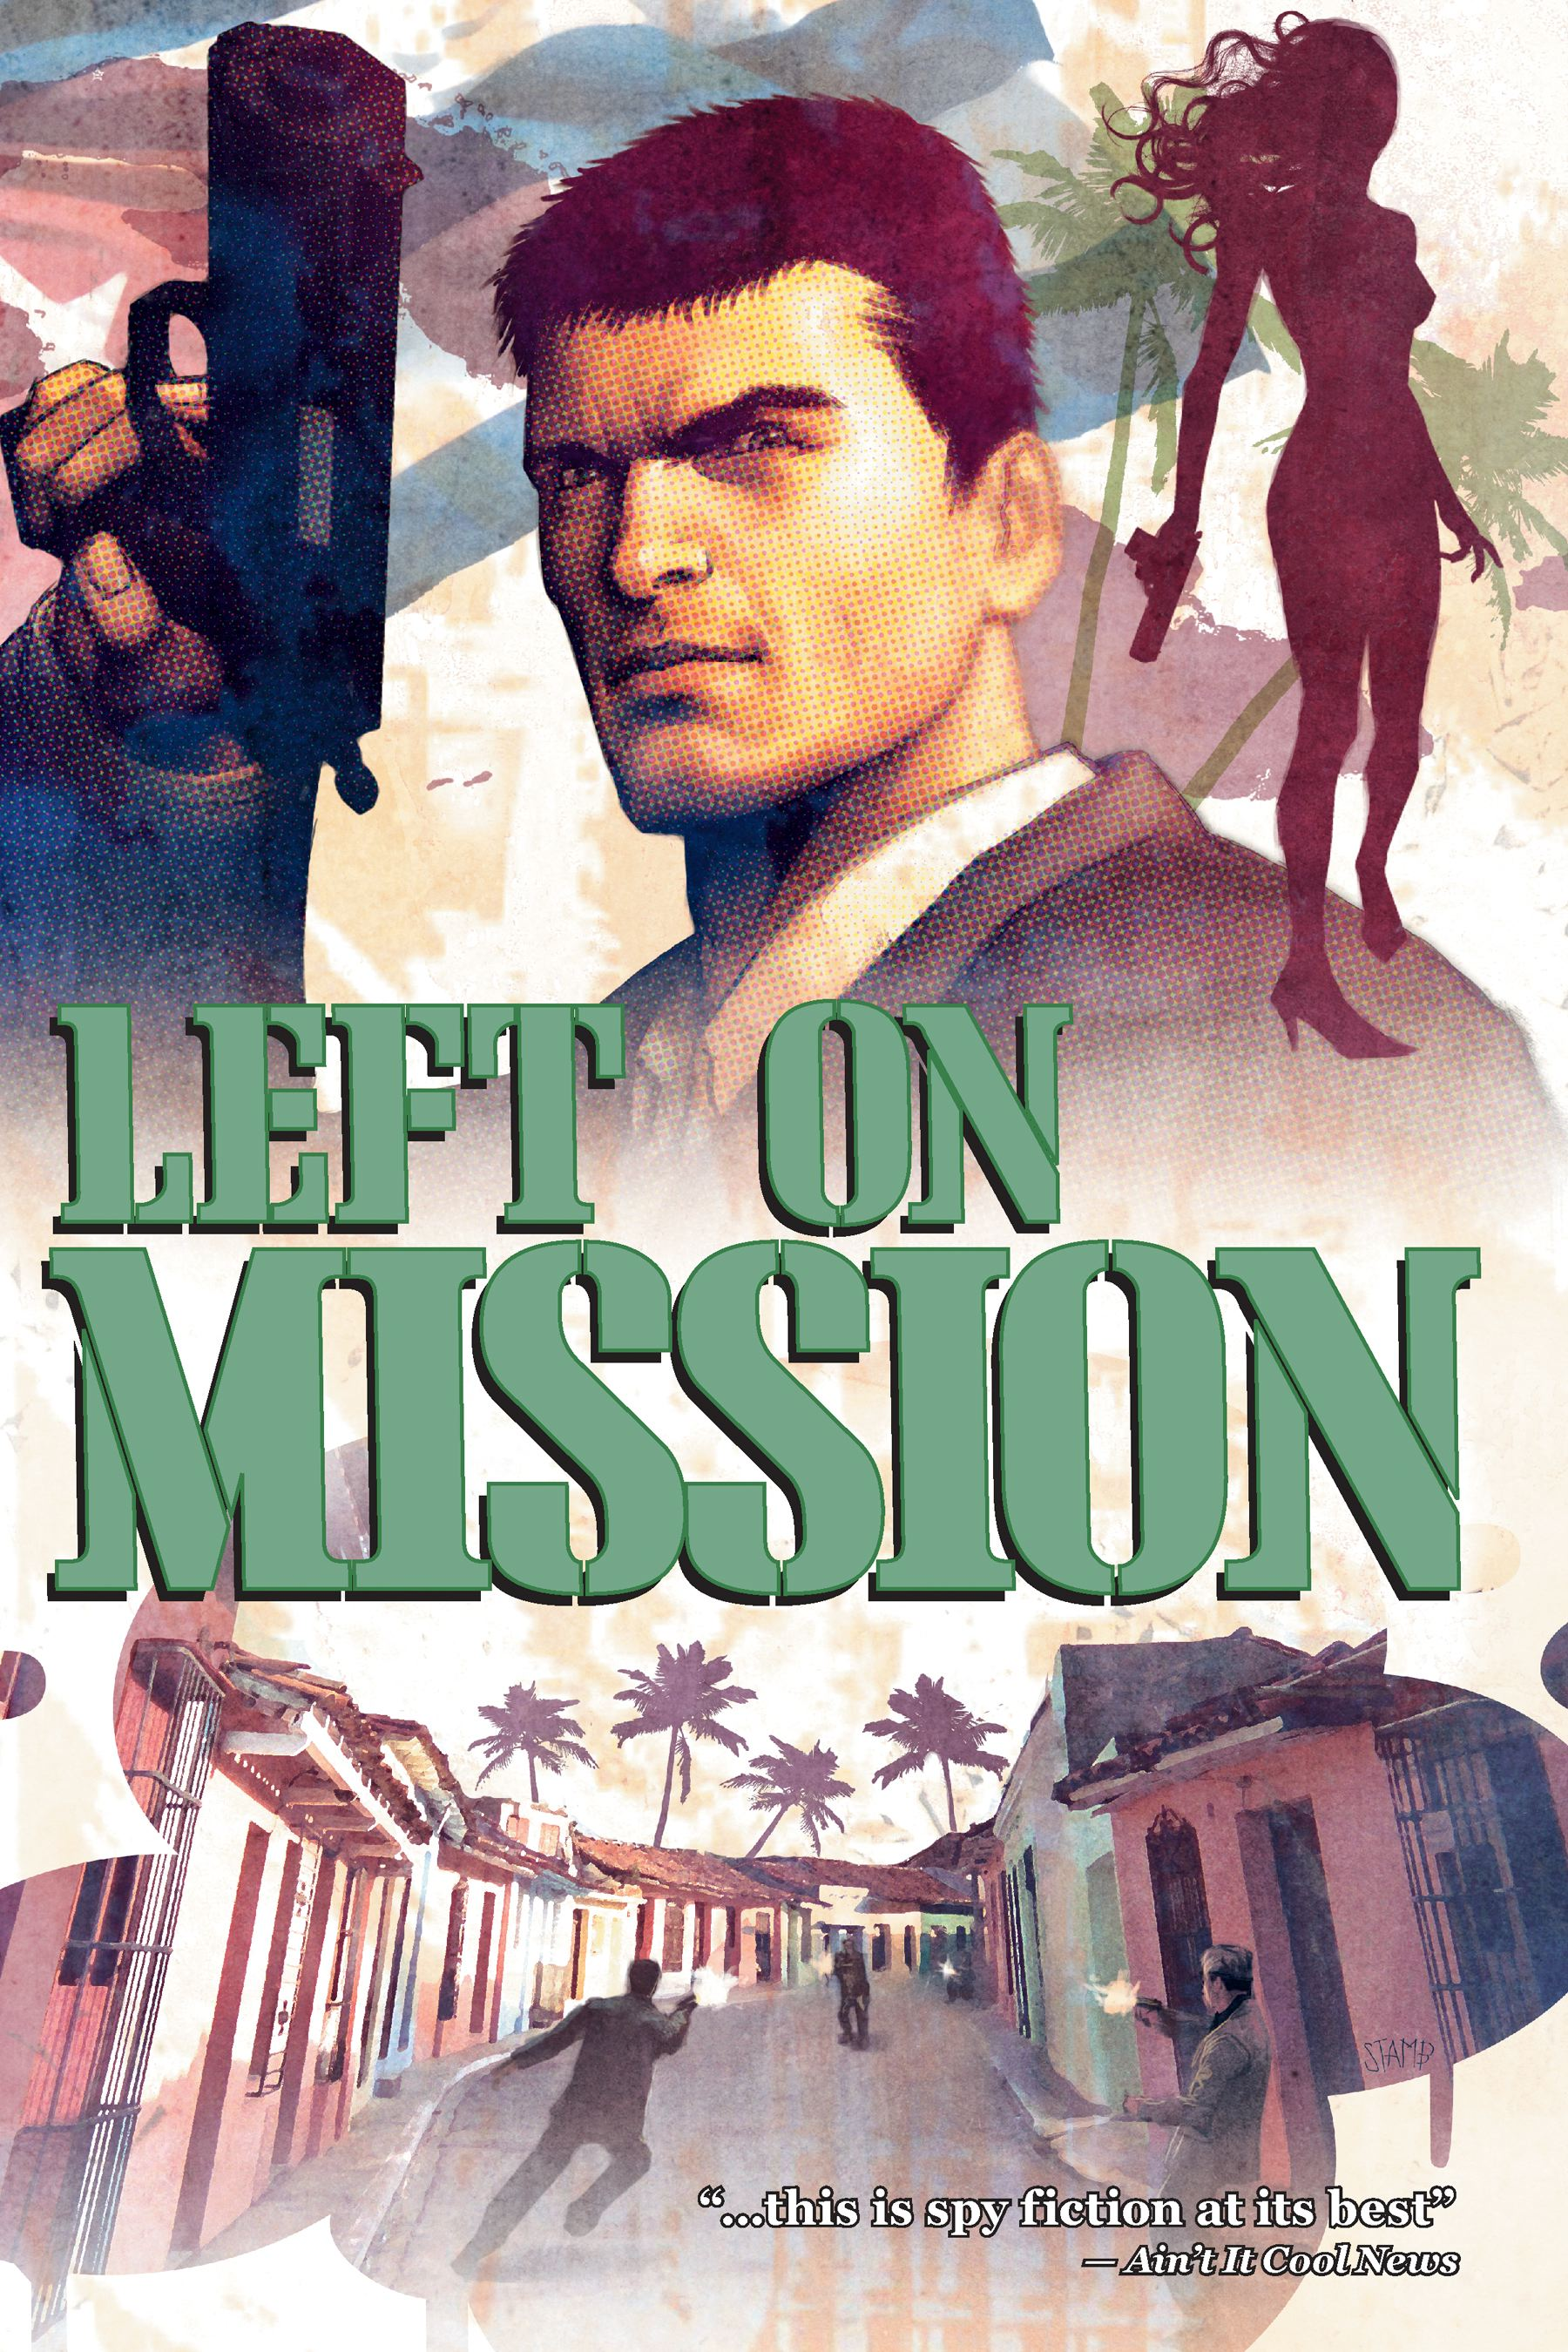 Left-on-mission-9781934506356_hr